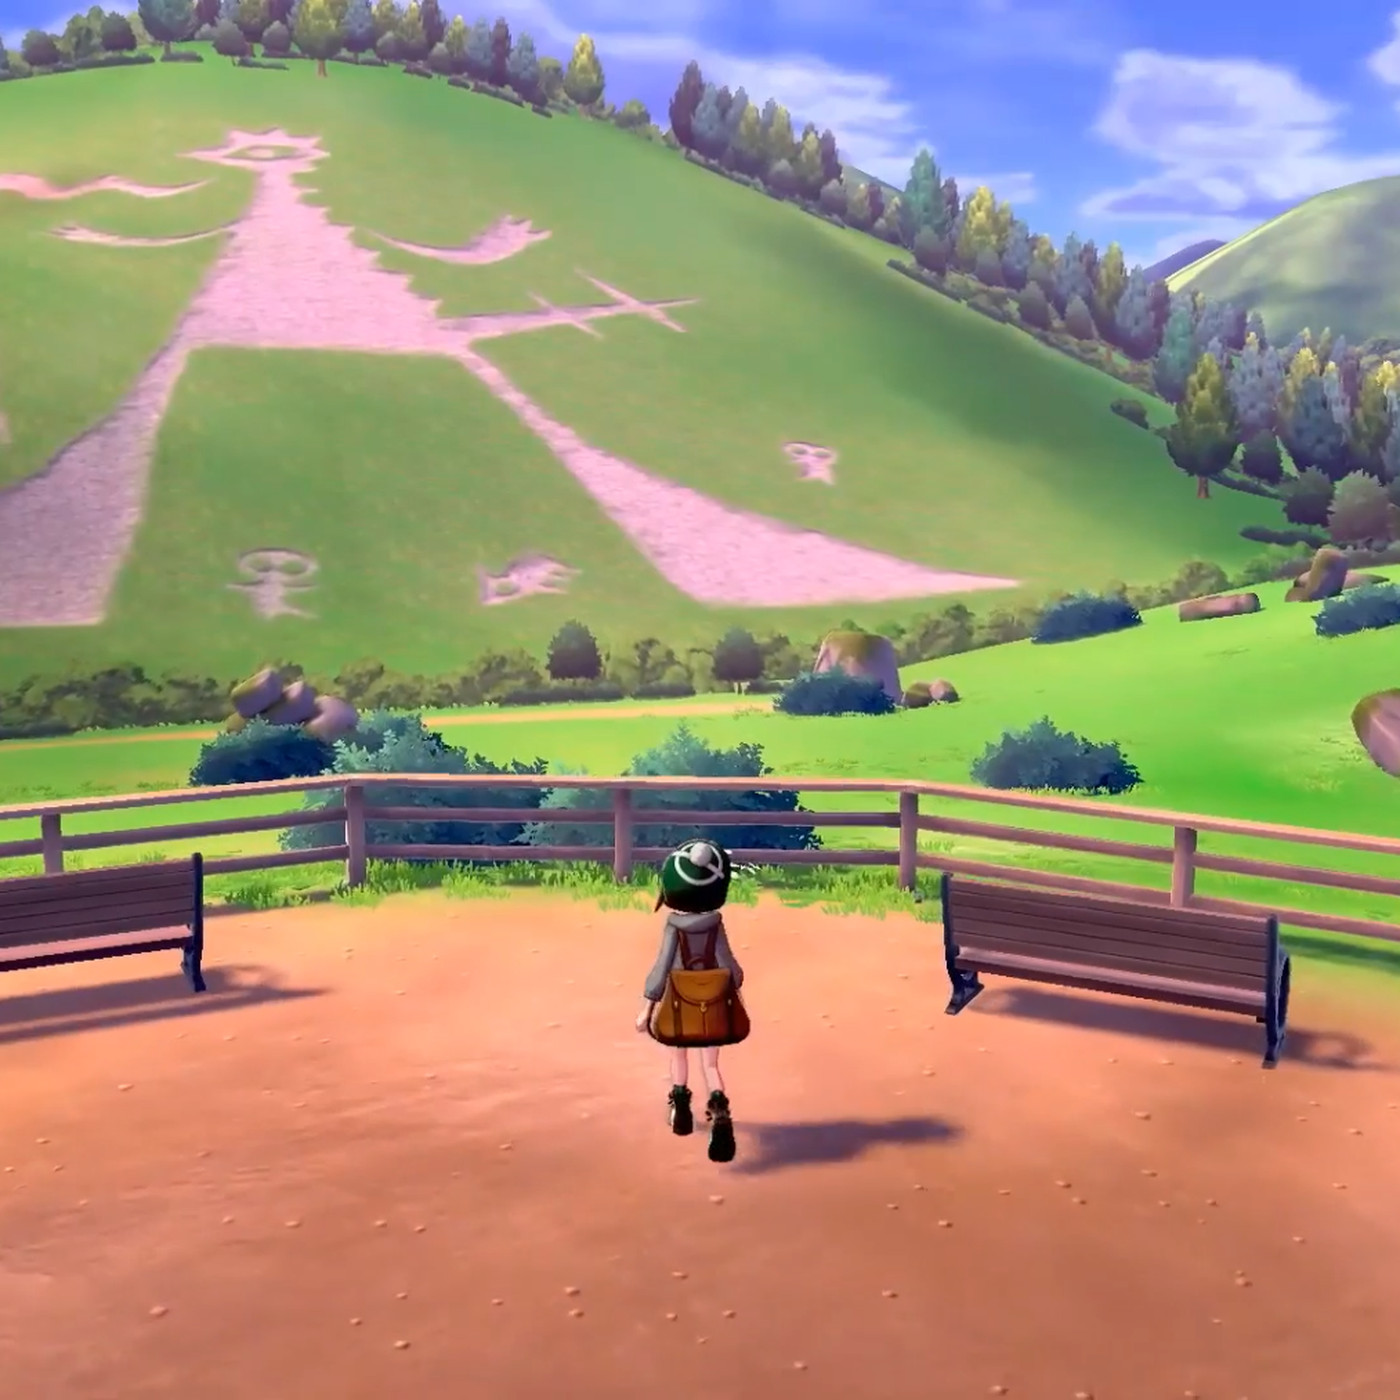 Is Pokémon Sword and Shield's Galar region based on the UK